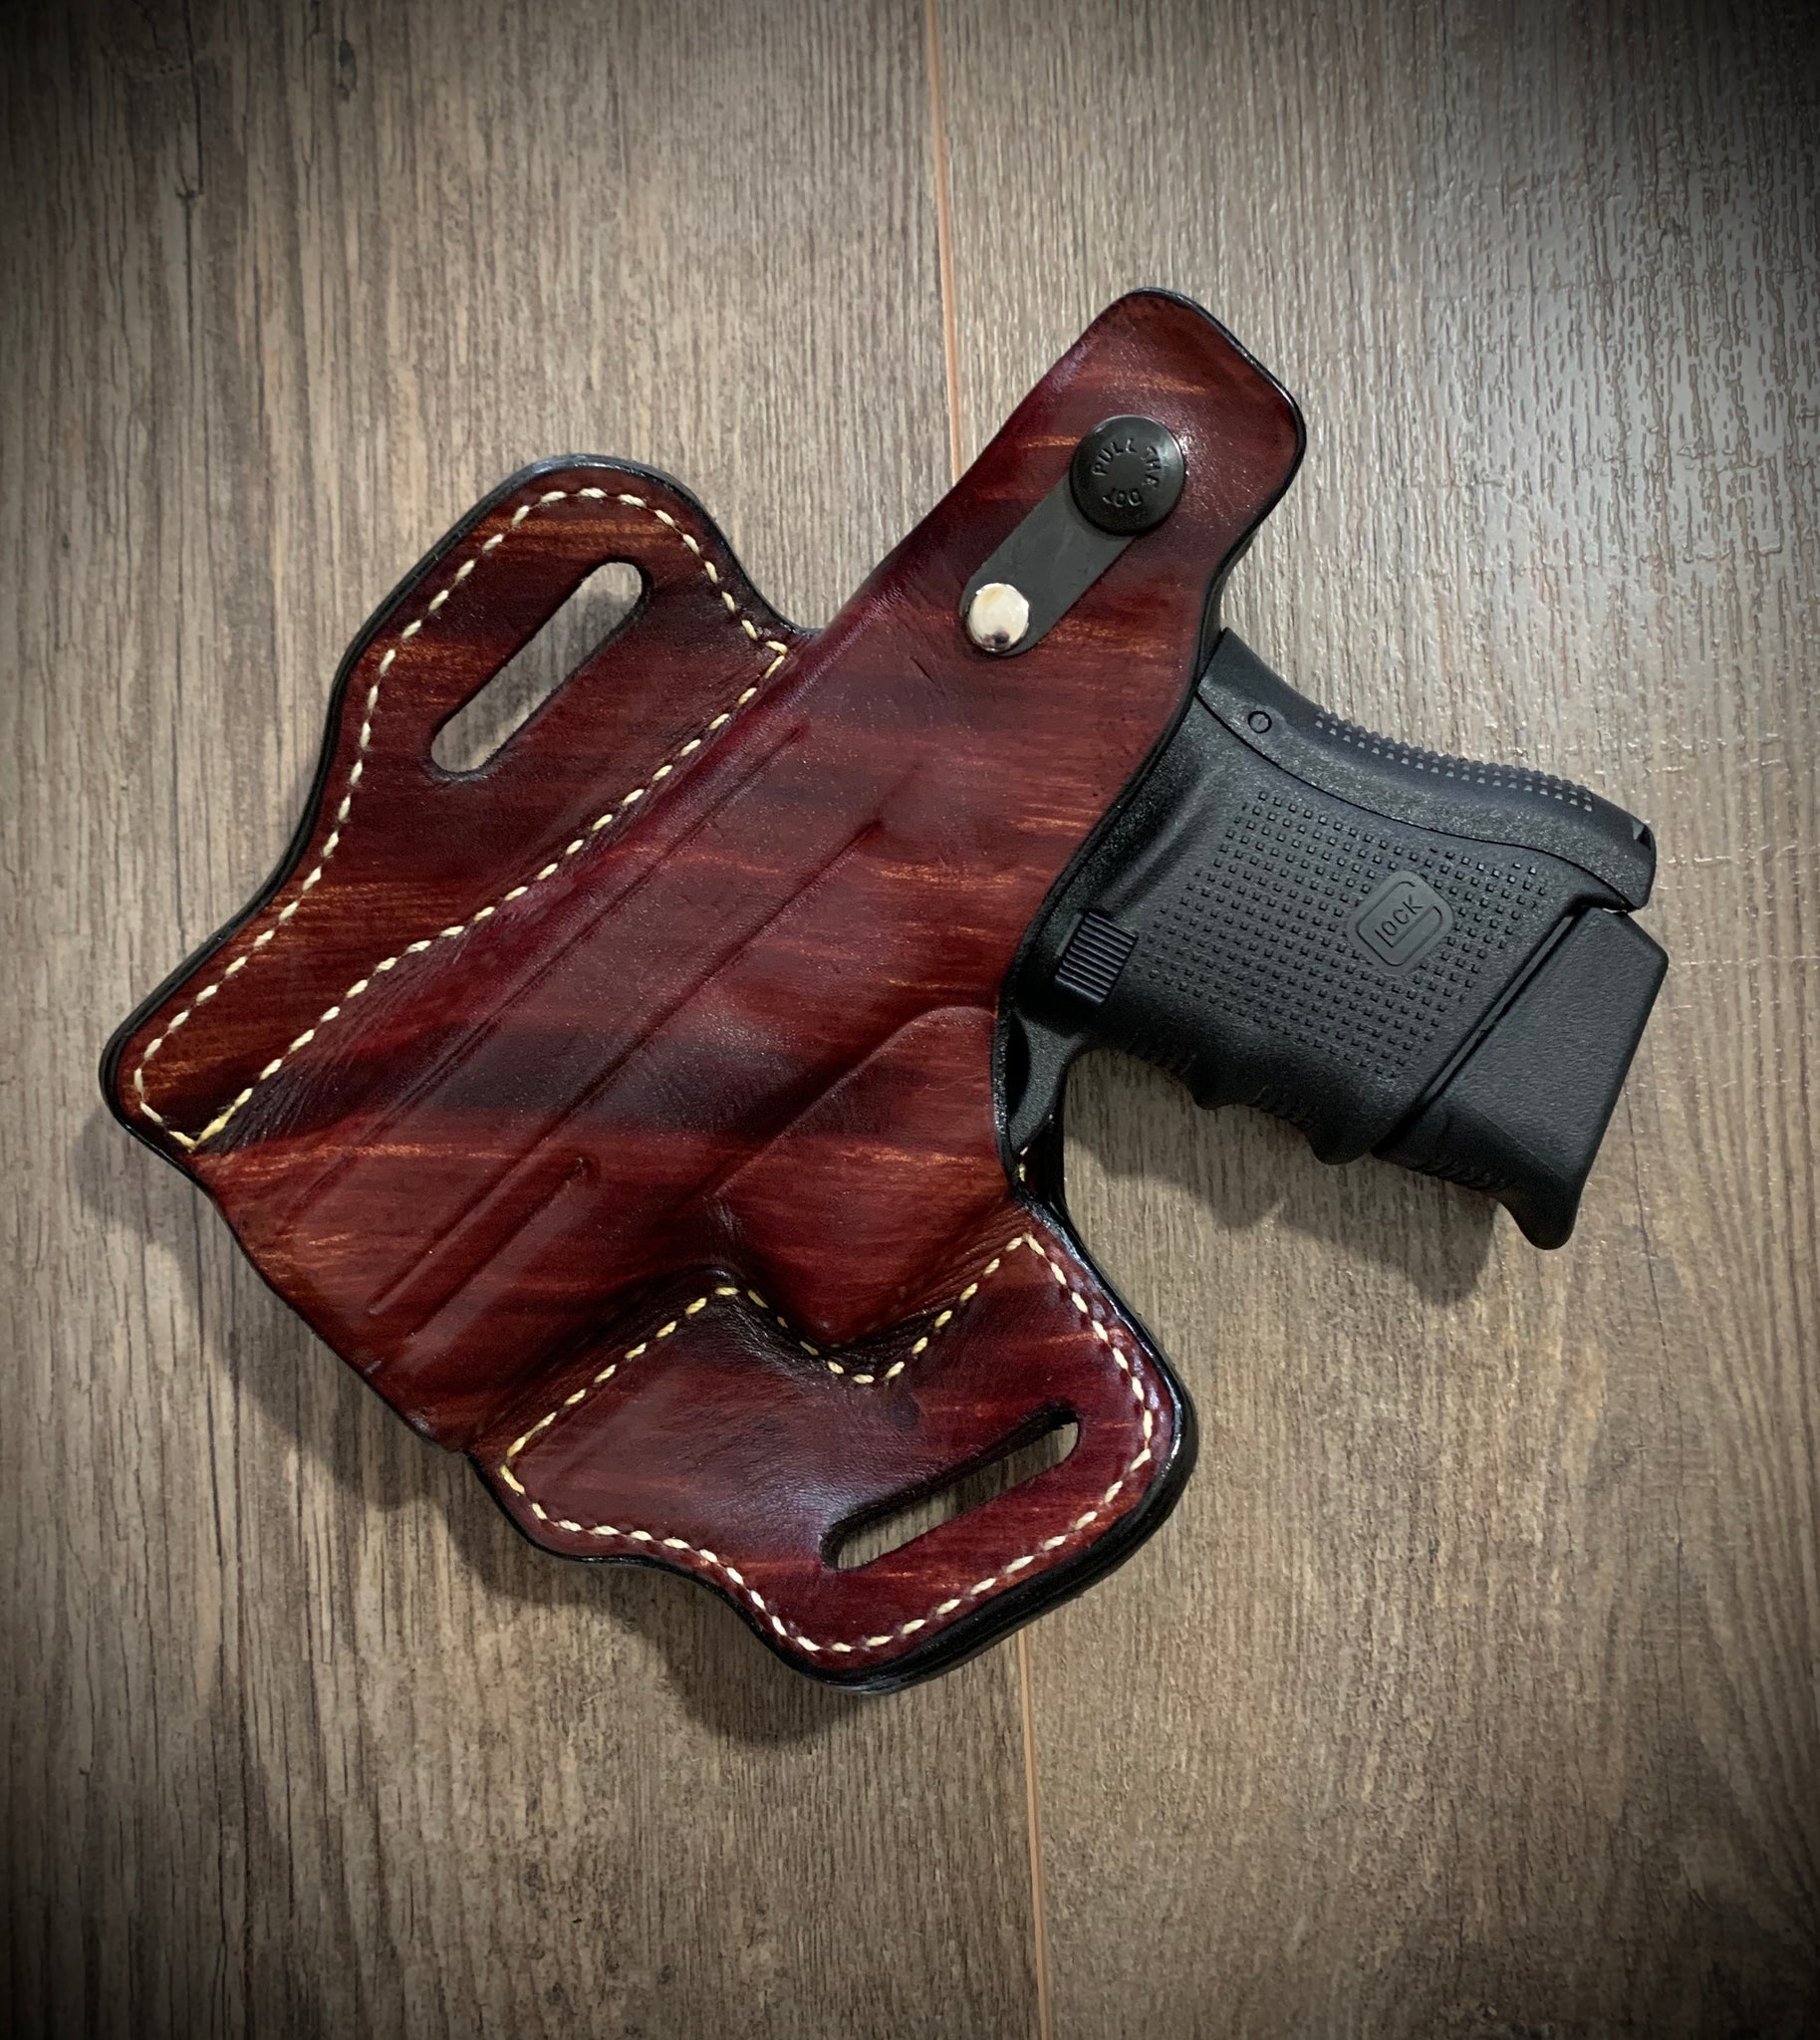 SIG P365 OWB HOLSTER LEVEL 2 (Genuine SHARK)